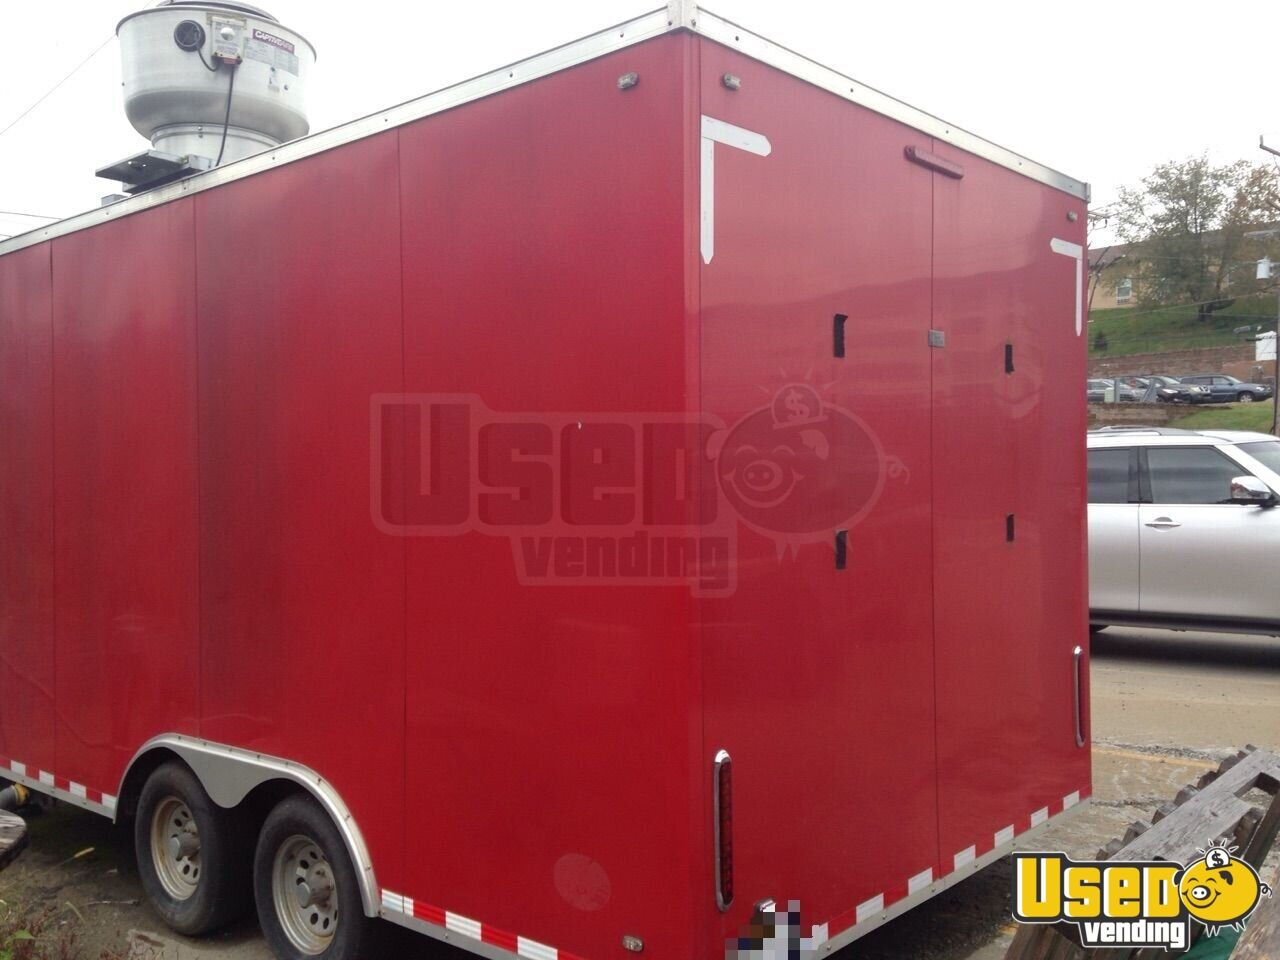 All-purpose Food Trailer Concession Window West Virginia for Sale - 3